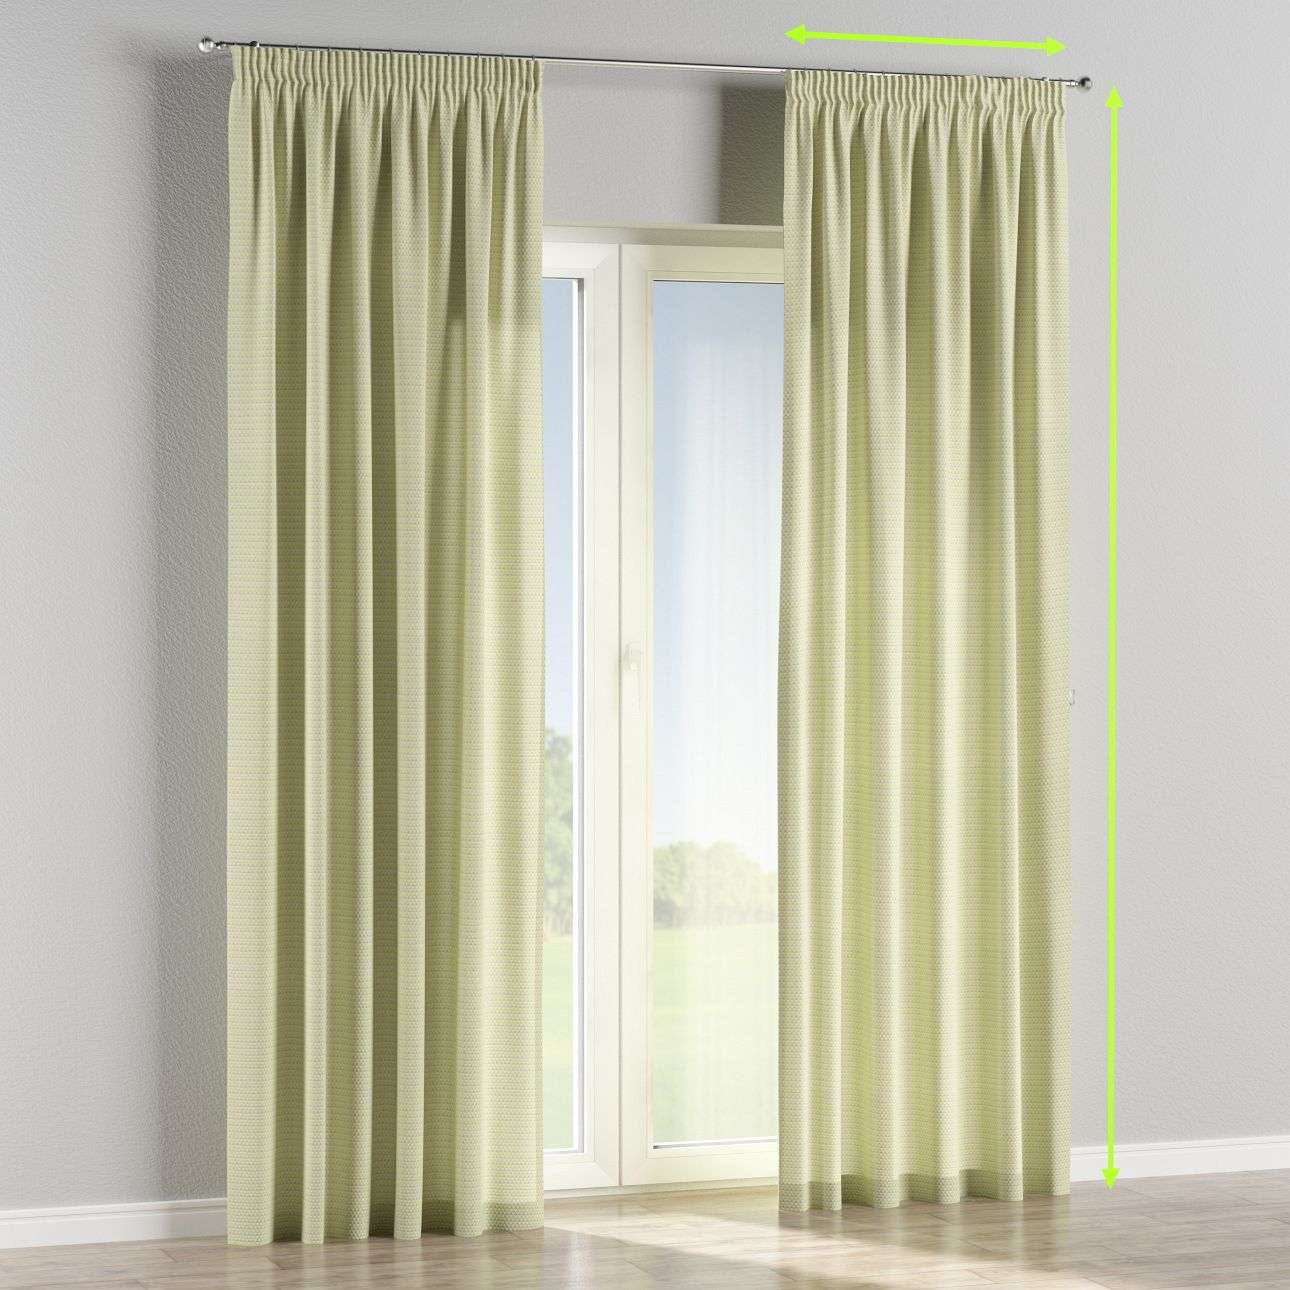 Pencil pleat curtains in collection Rustica, fabric: 140-34